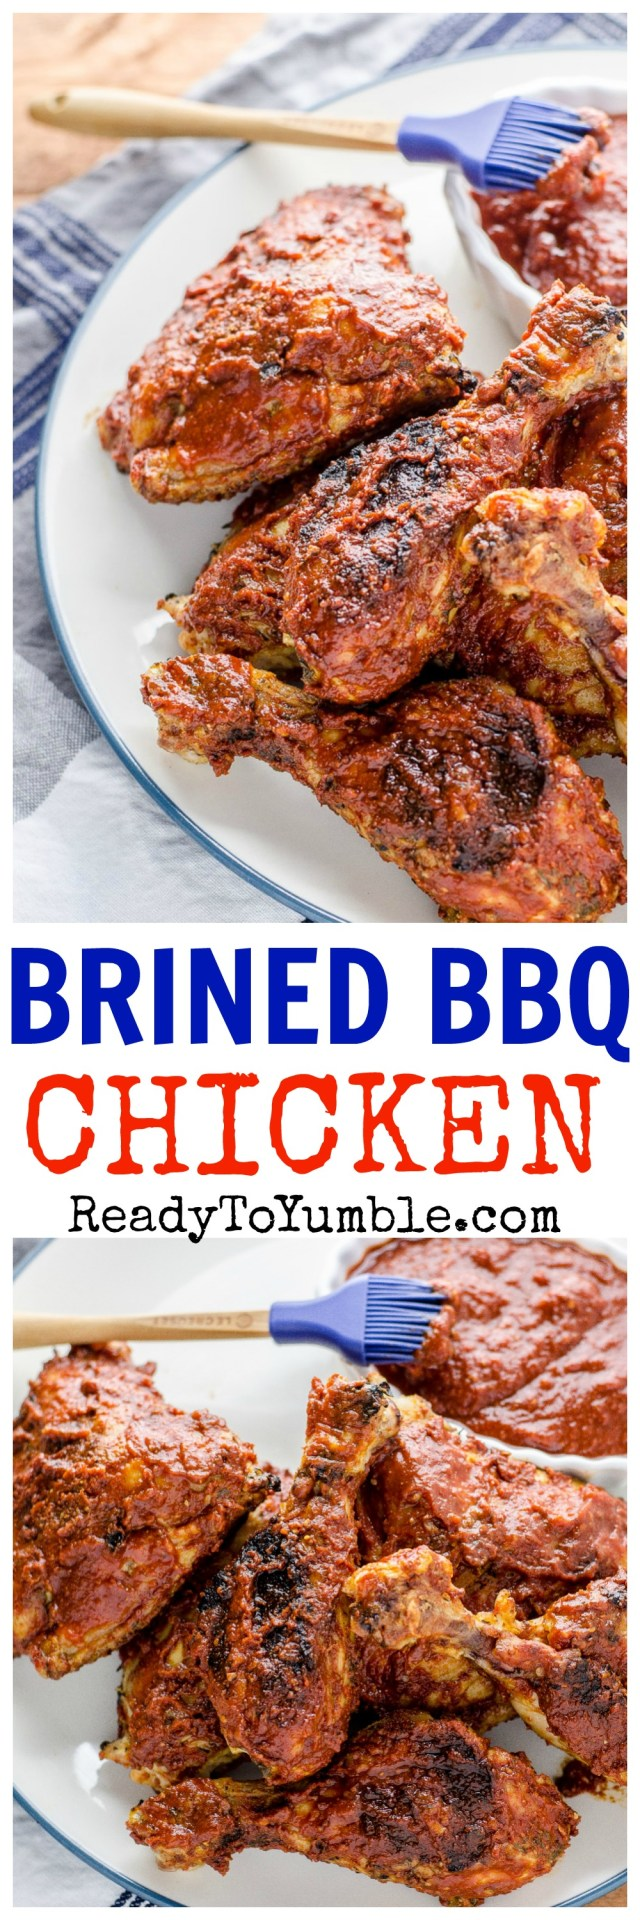 Brined Barbecue Chicken is the juiciest and most flavorful way to grill up a chicken dinner.